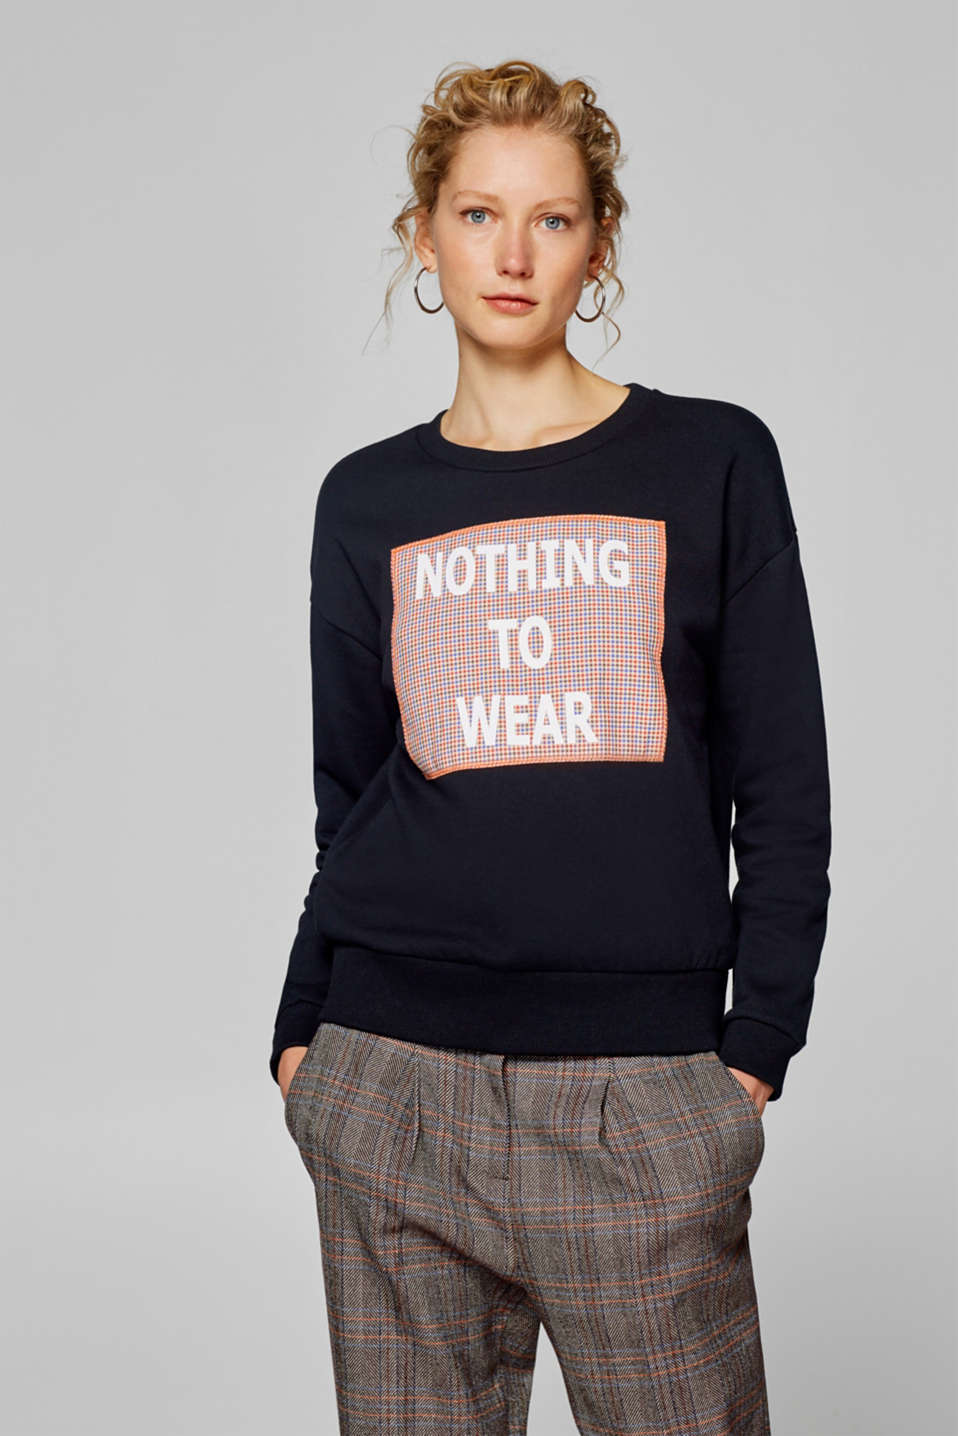 edc - Sweatshirt mit Statement-Applikation